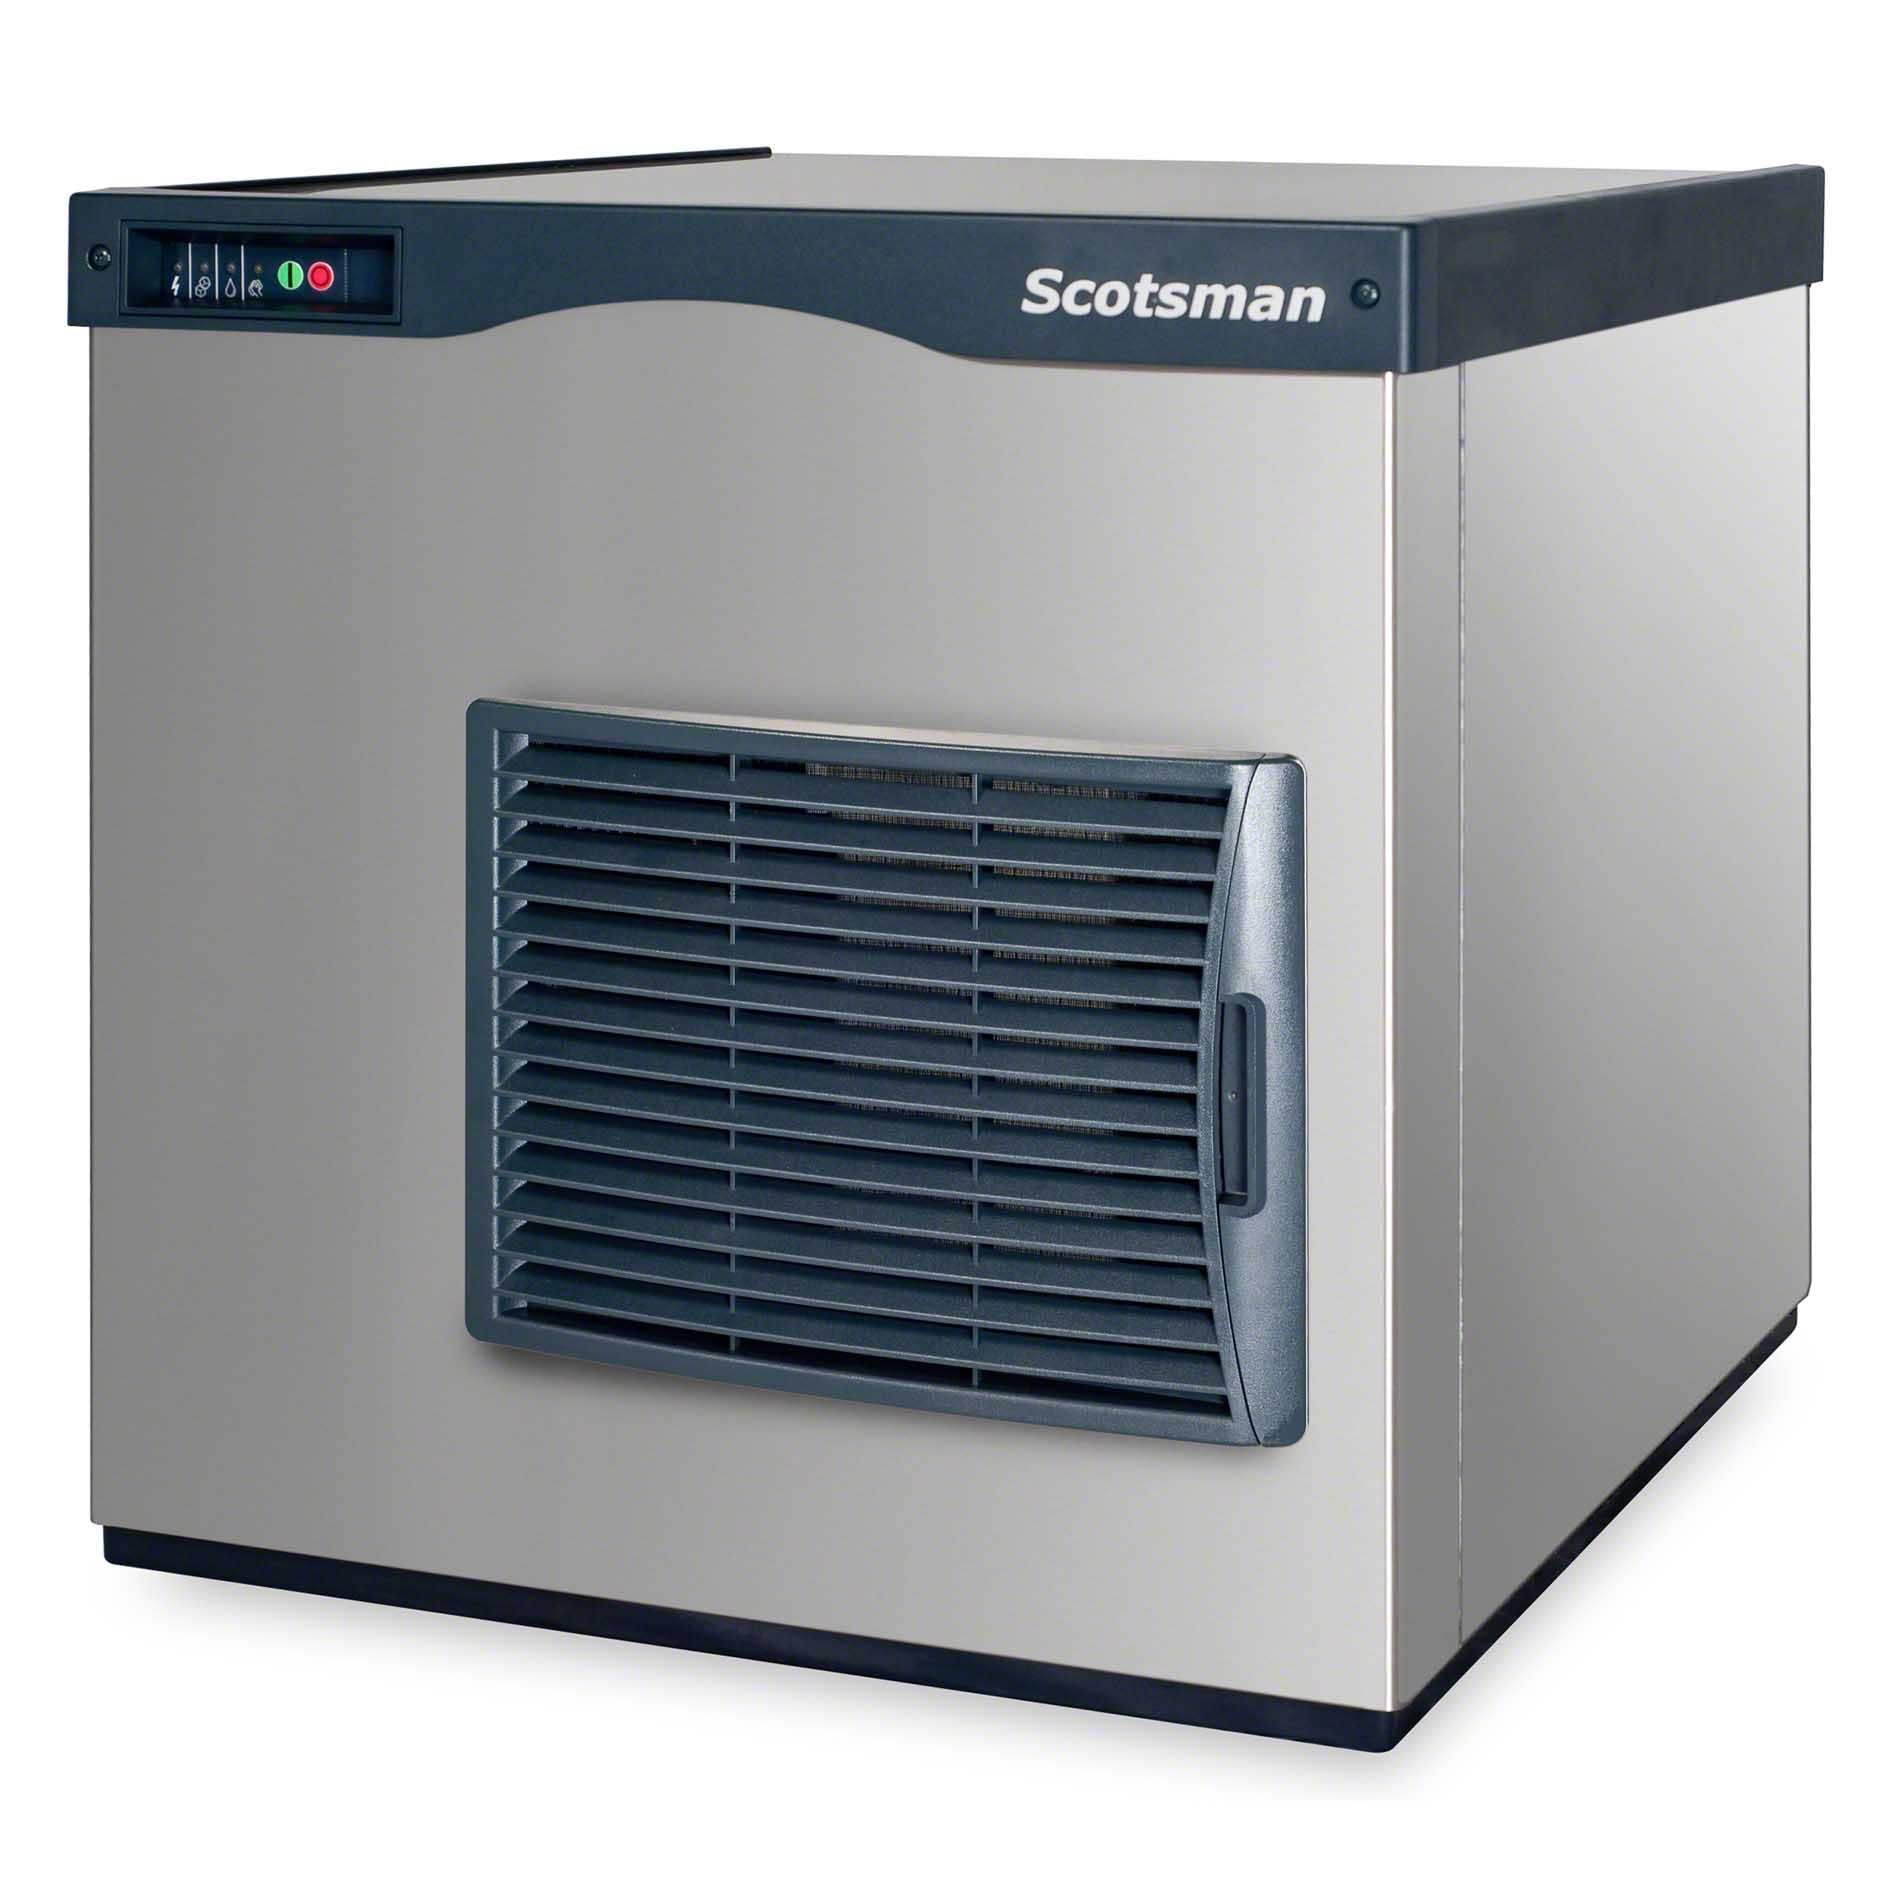 Scotsman - N0422A-1A 420 lb Nugget Ice Machine - Prodigy Series Ice machine sold by Food Service Warehouse